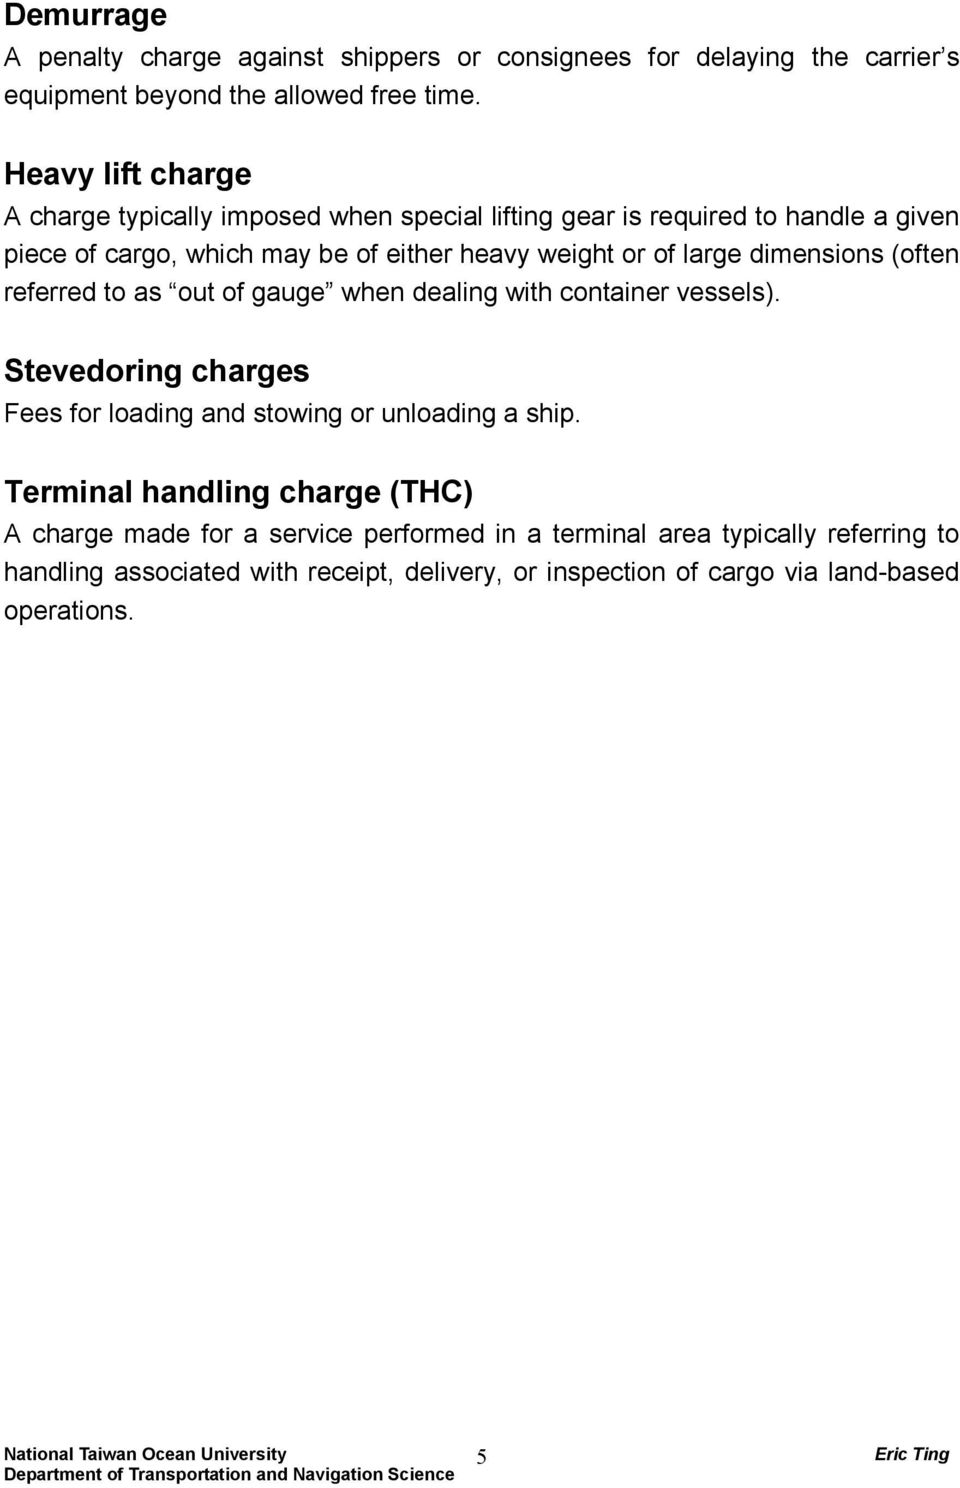 large dimensions (often refered to as out ofgauge when dealing with container vessels). Stevedoring charges Fees for loading and stowing or unloading a ship.